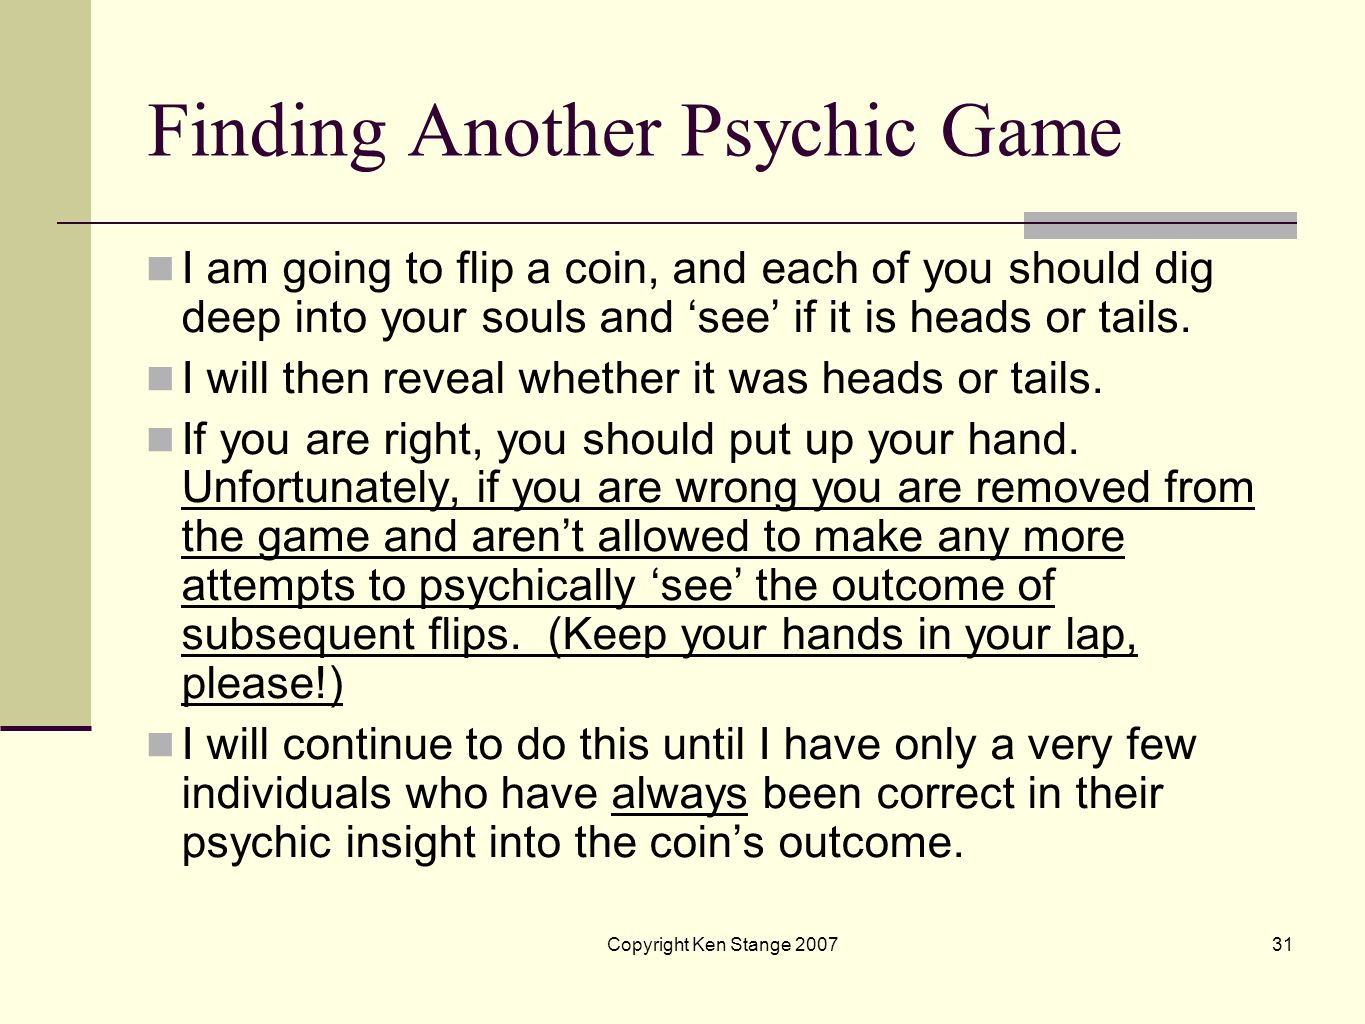 Finding Another Psychic Game